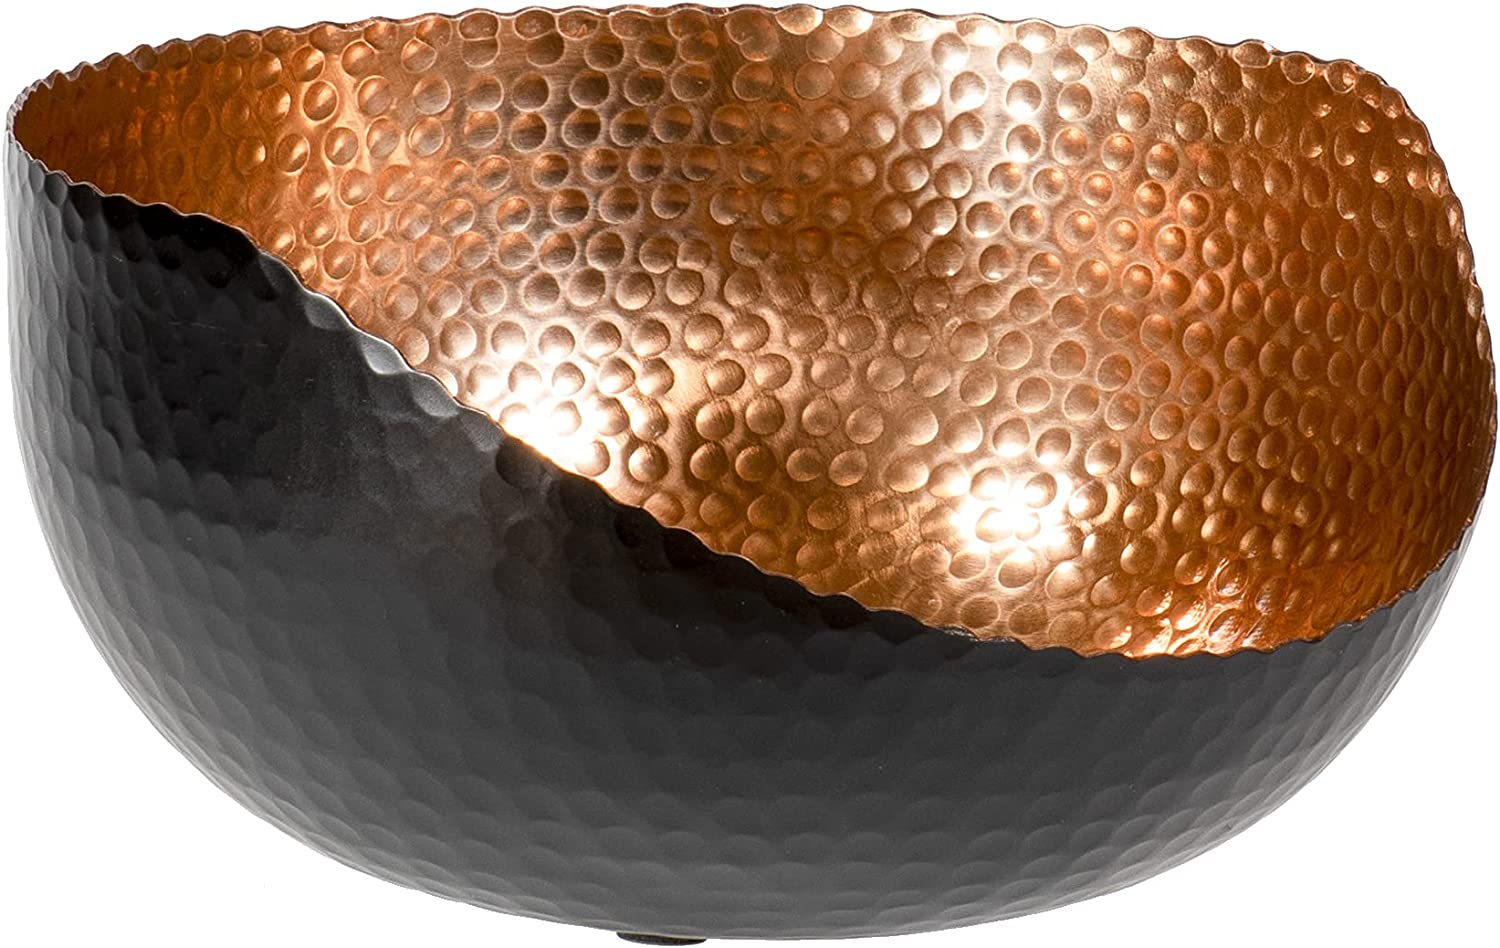 Red Co. Modern Round Decorative Hand-Hammered Slant-Cut Centerpiece Bowl for Home and Kitchen Décor, Black/Copper, Large – 10 Inches